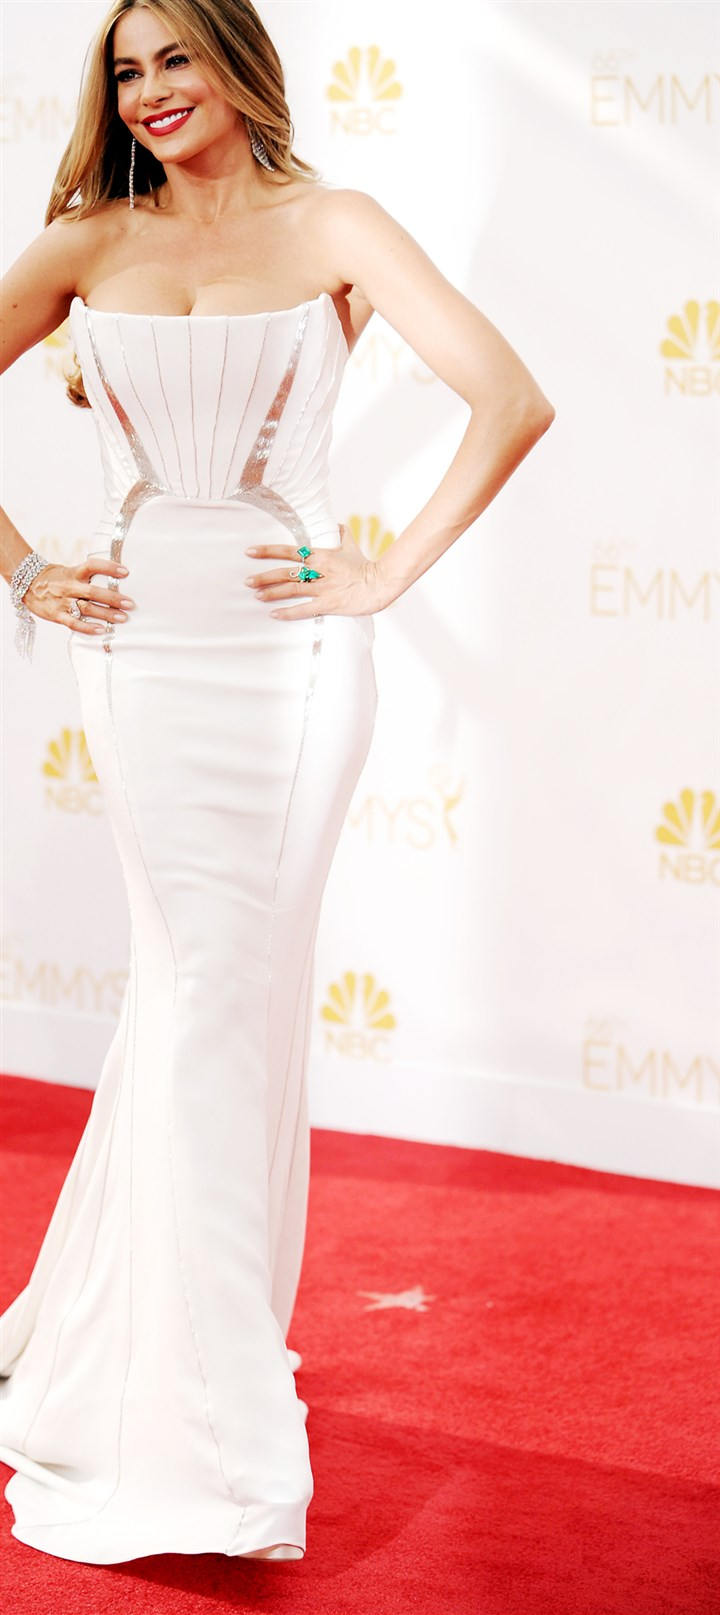 2014 Primetime Emmy Awards - Arrivals Sofia Vergara arrives at the 66th Annual Primetime Emmy Awards.